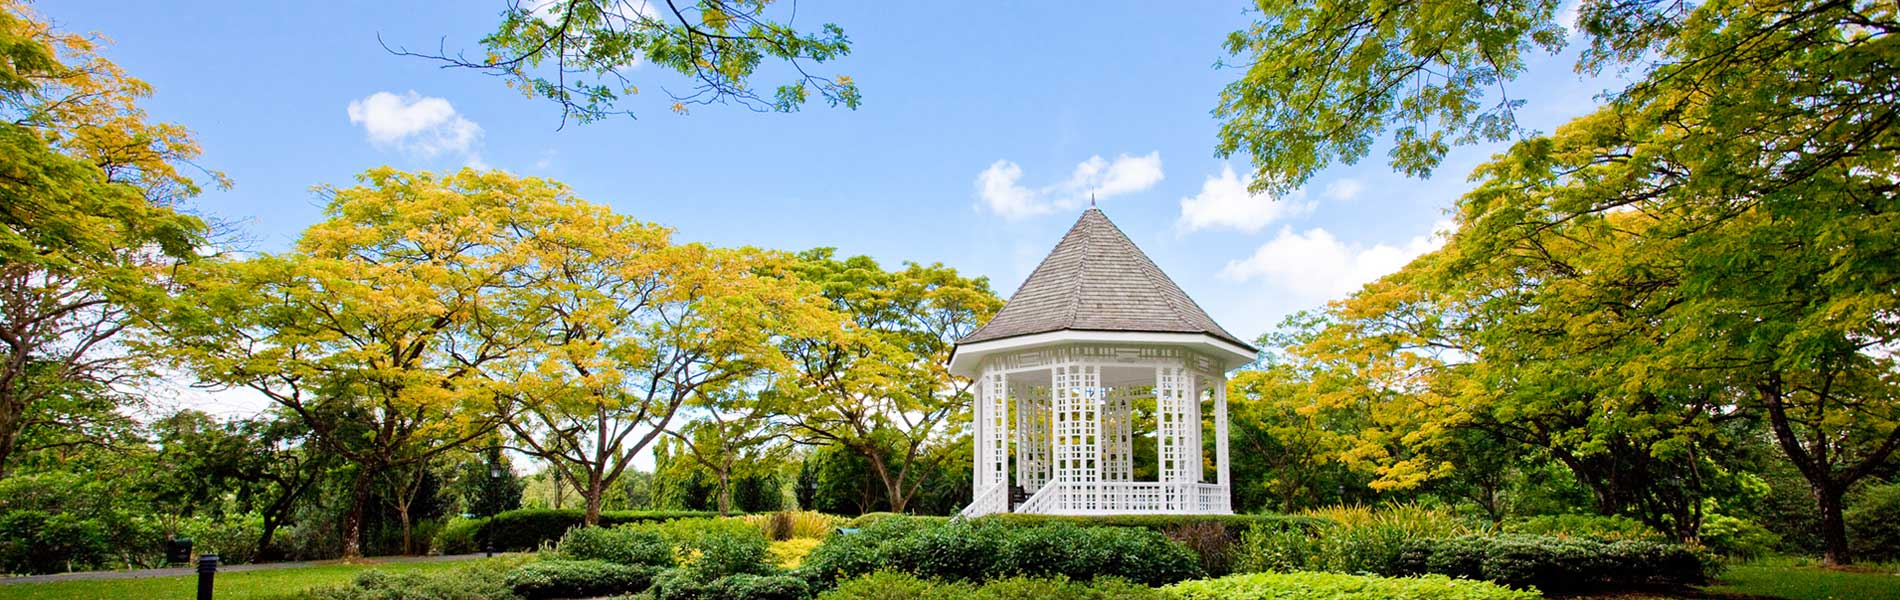 Bandstand at Singapore Botanic Gardens